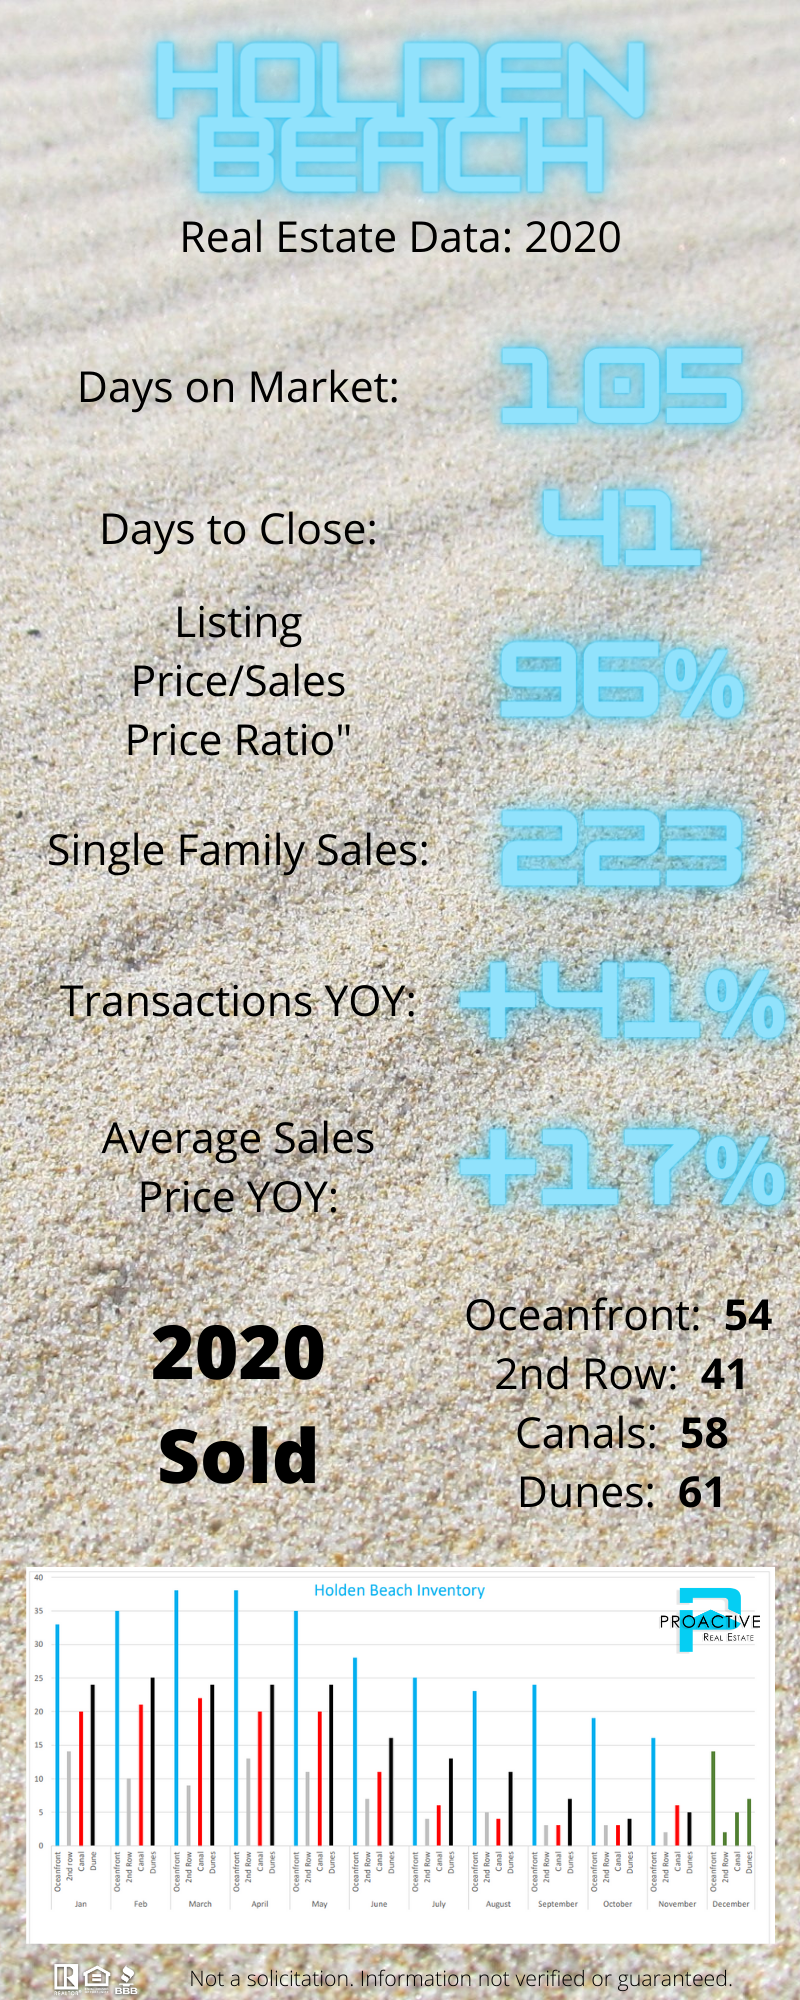 Holden_Beach_Real_Estate_Data__2020_INFOGRAPHIC.png